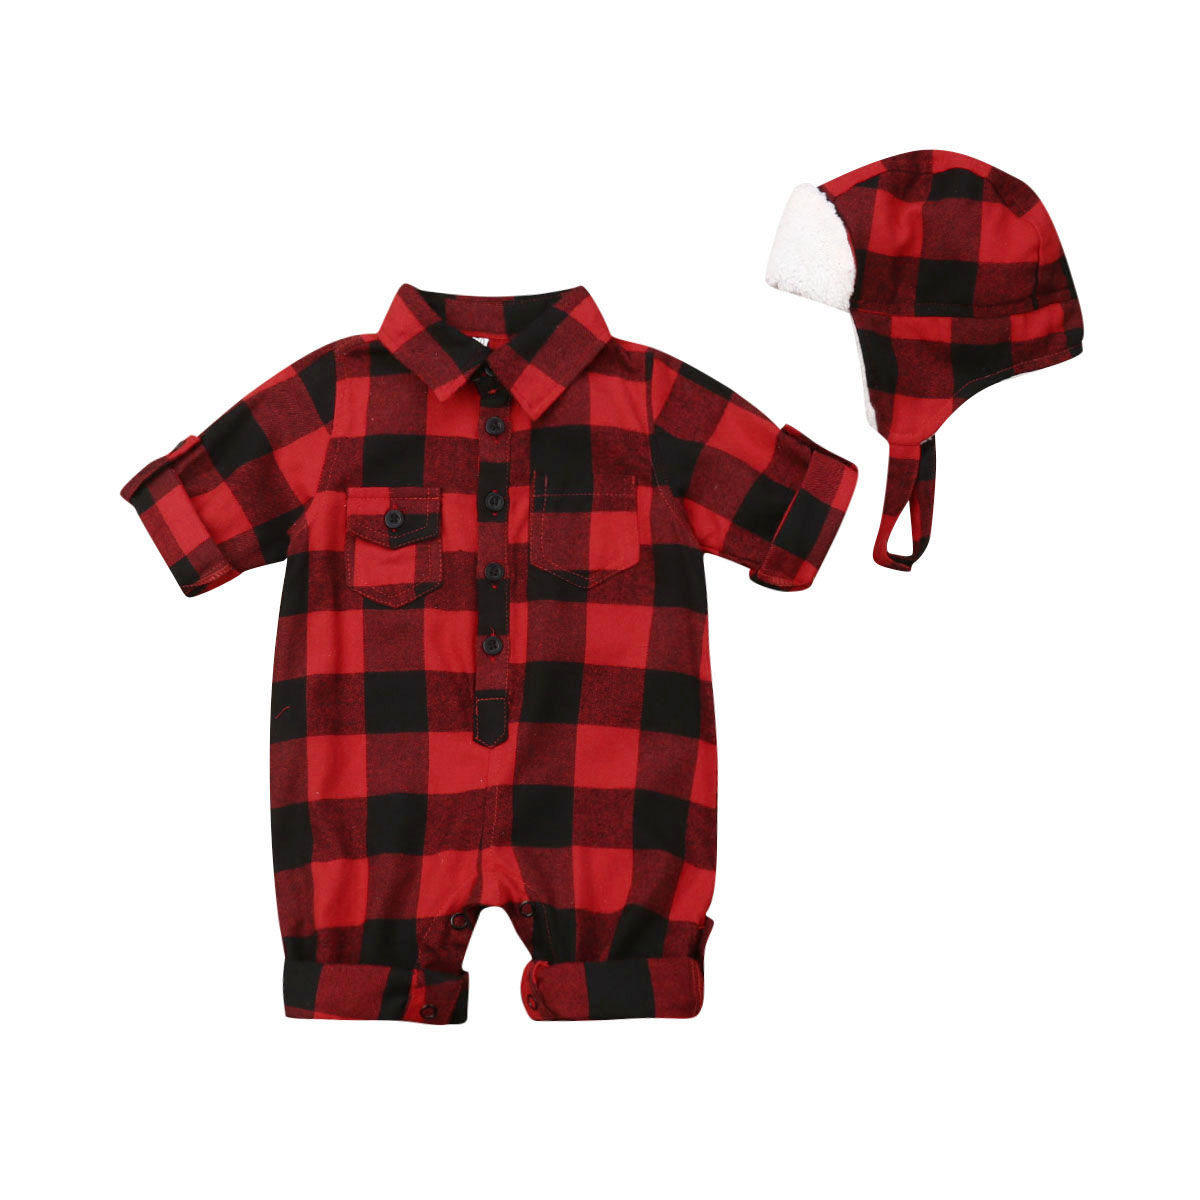 2019 Christmas Newborn Baby Boy Girl Long Sleeve Plaid Romper Jumpsuit Warm Hat 2PCS Xmas Clothes